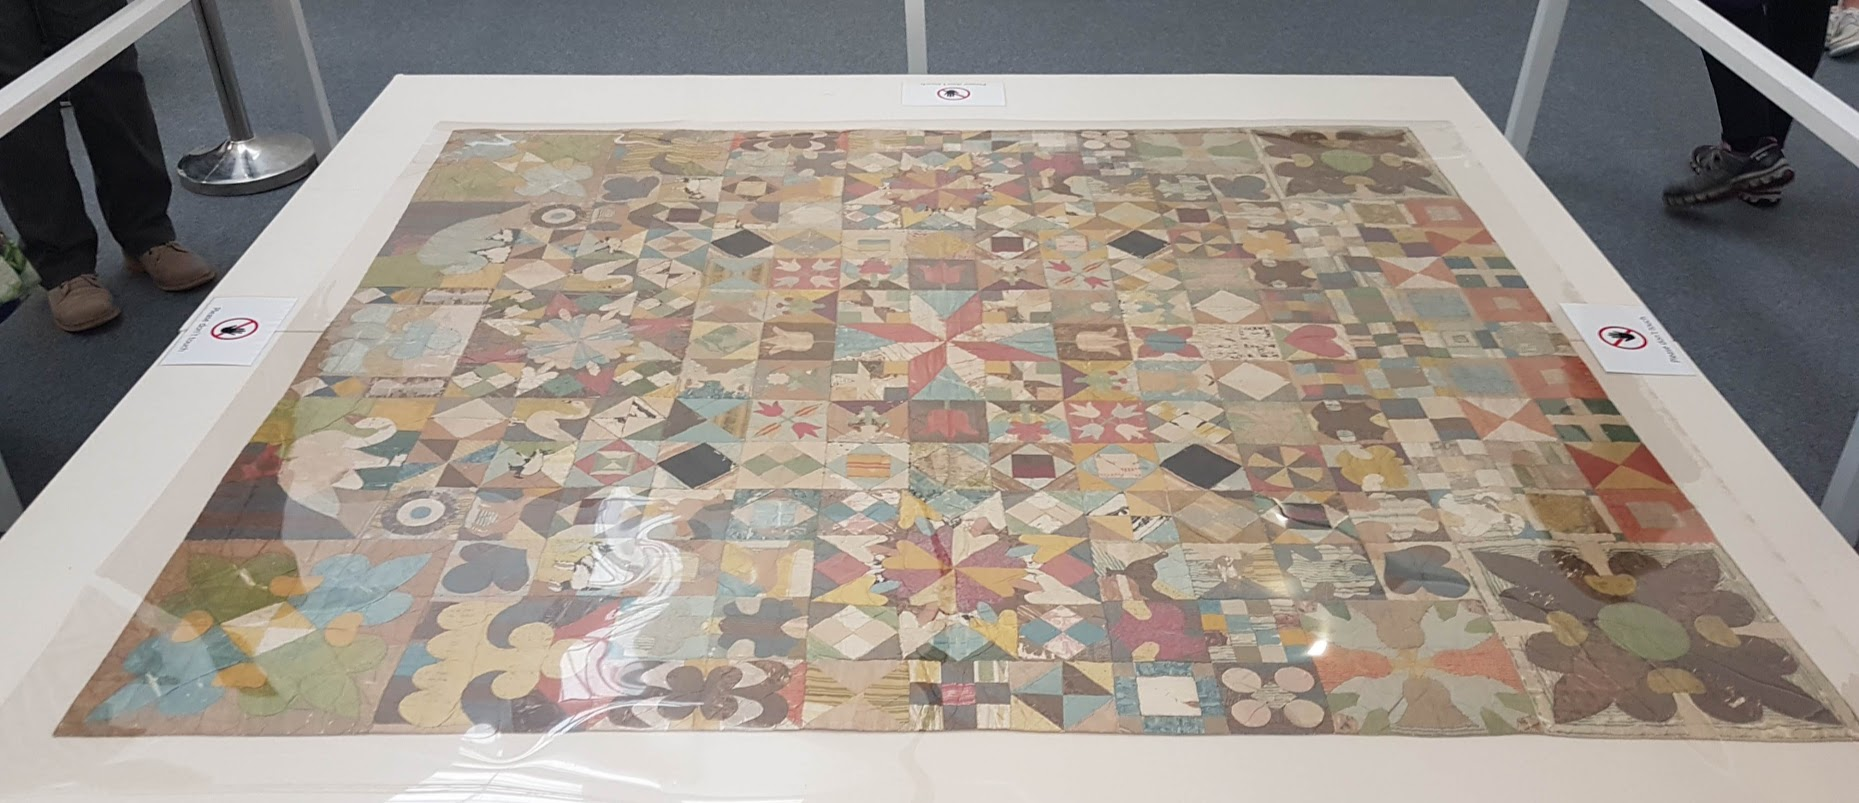 The Festival of Quilts 2018